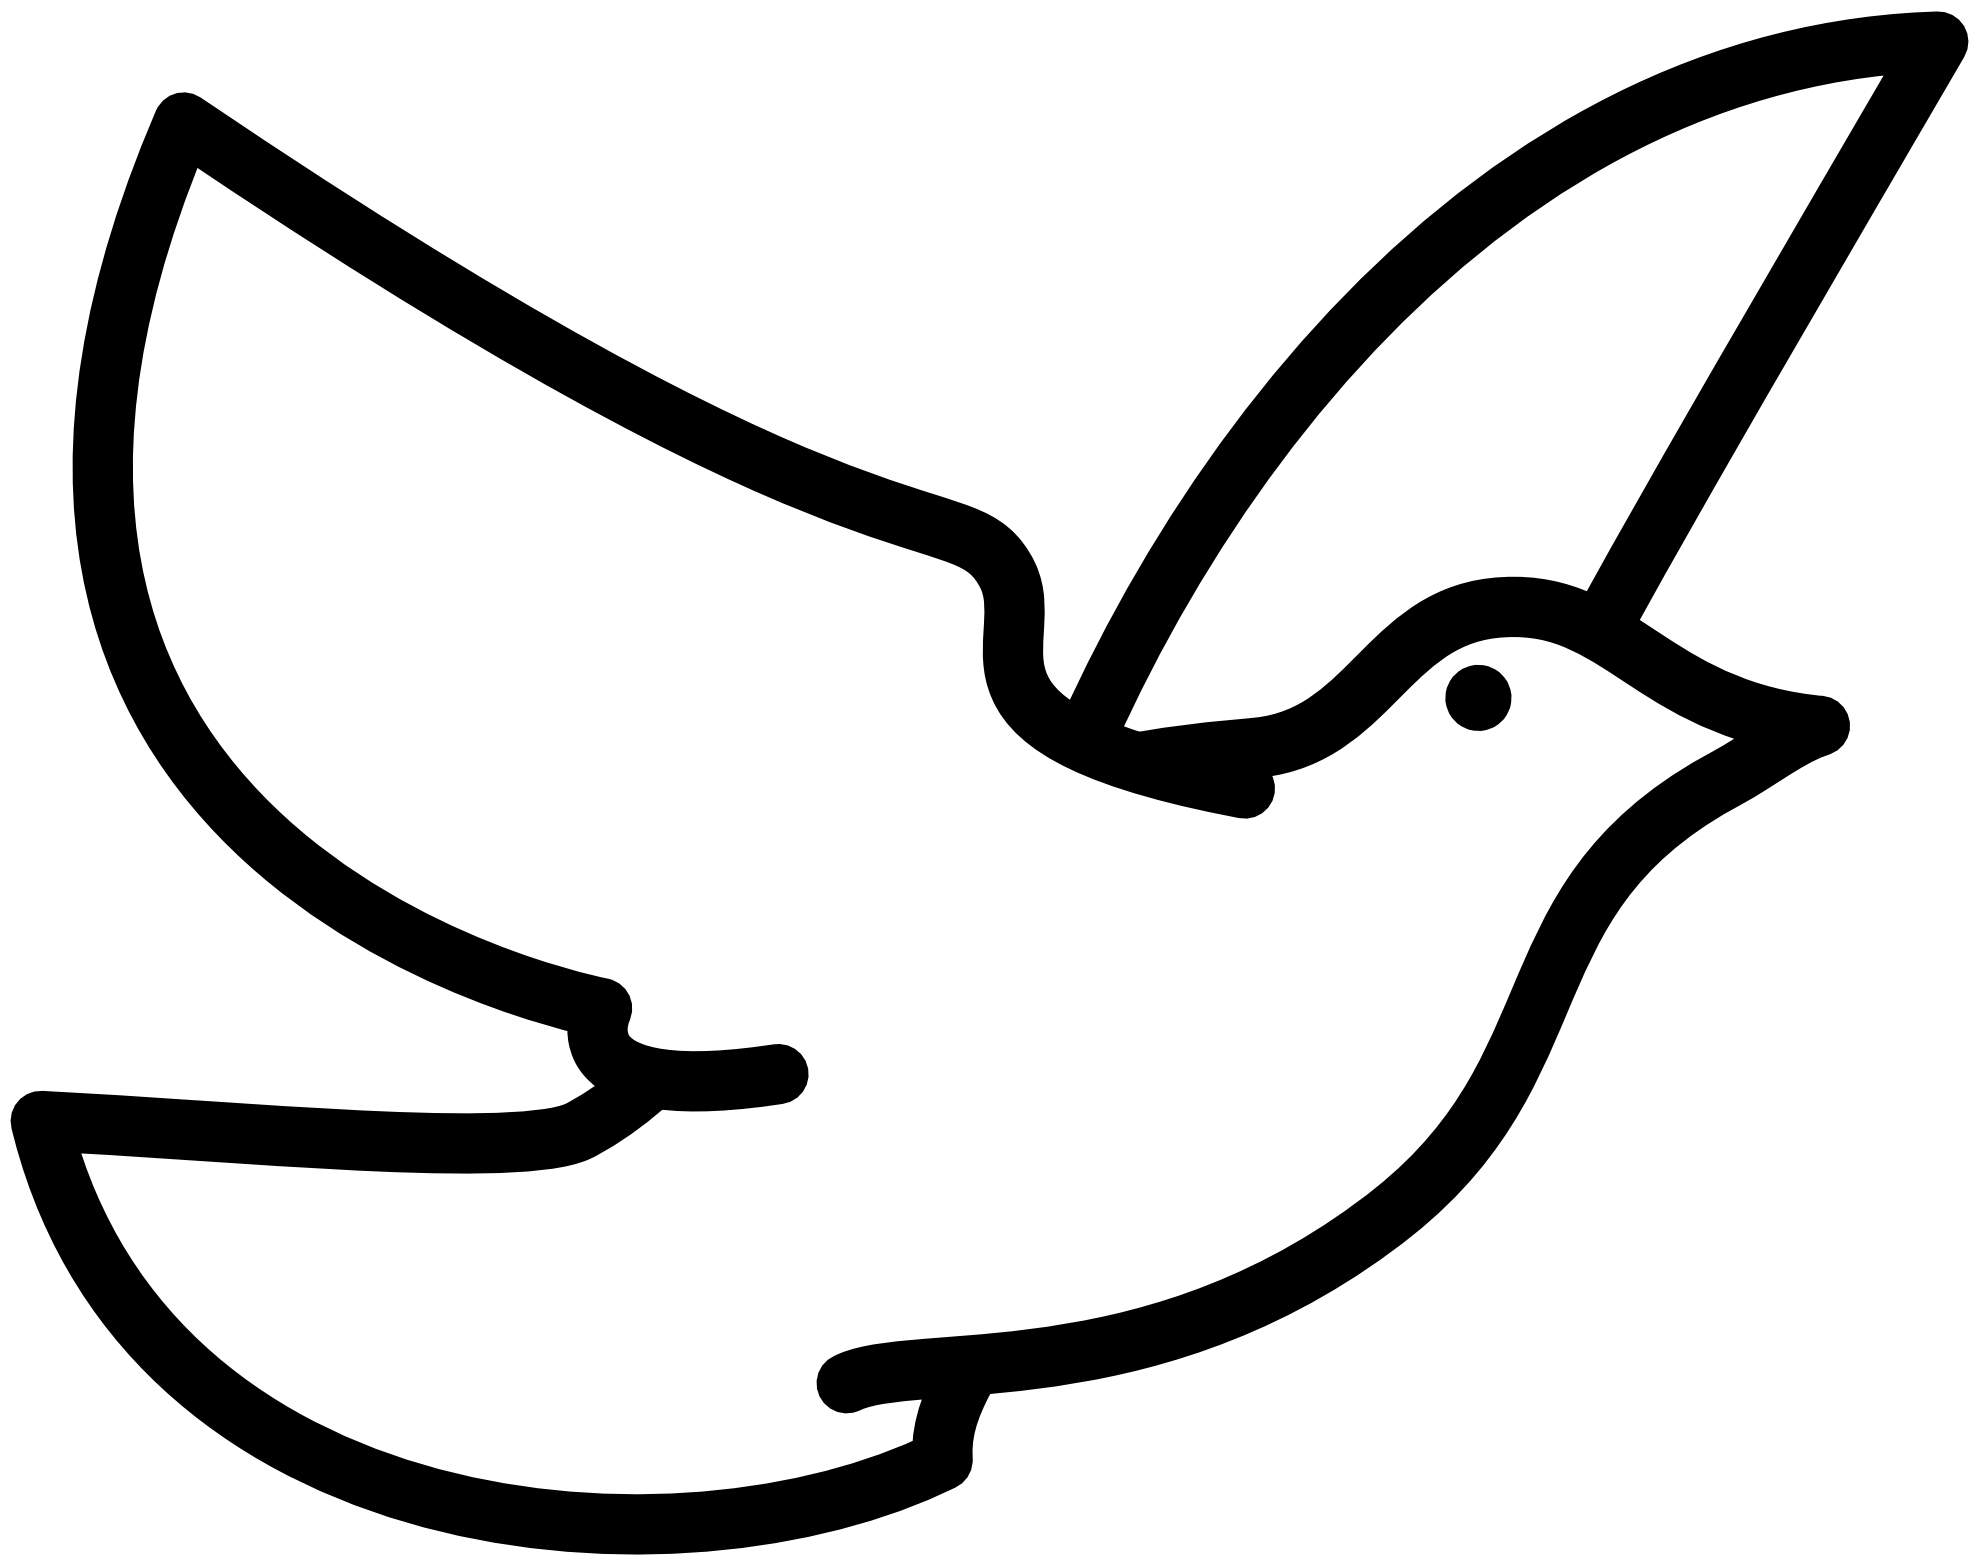 Peace Dove Coloring Page At Getdrawings Com Free For Personal Use